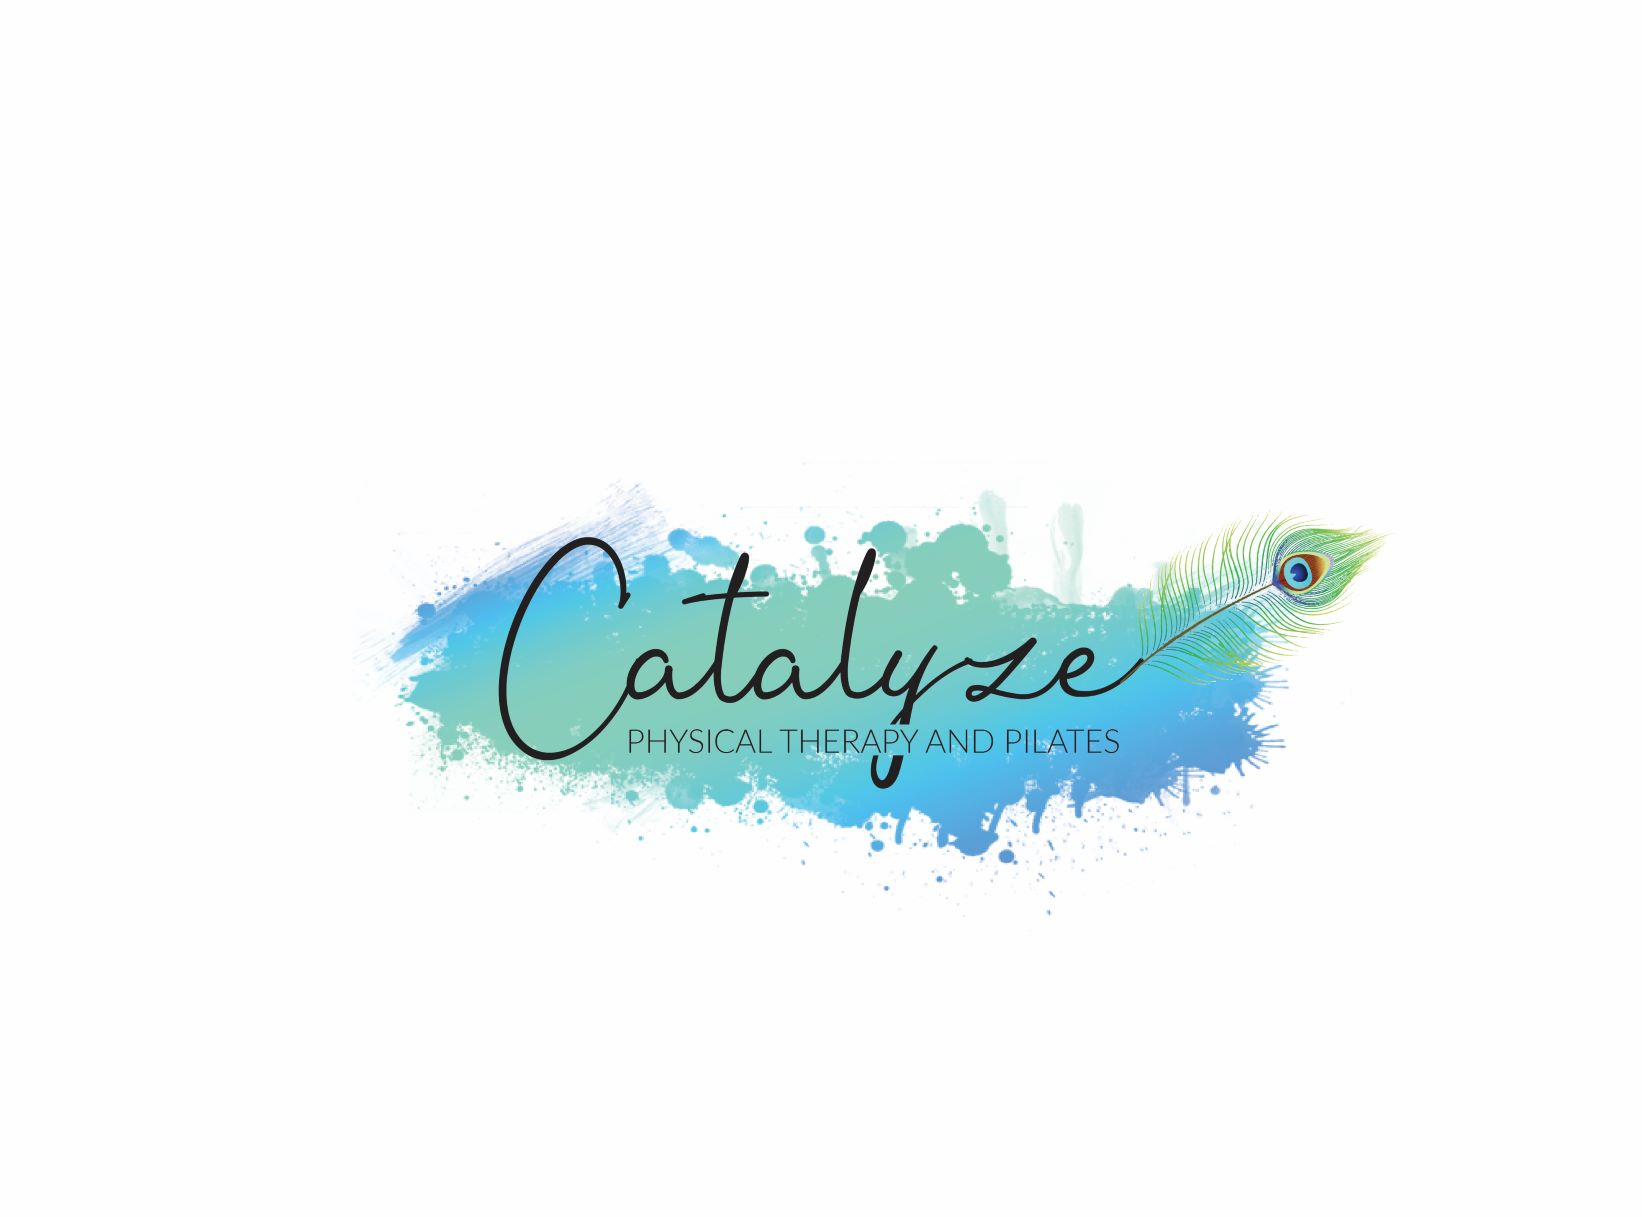 Colleen Starczak, Catalyze Physical Therapy and Pilates